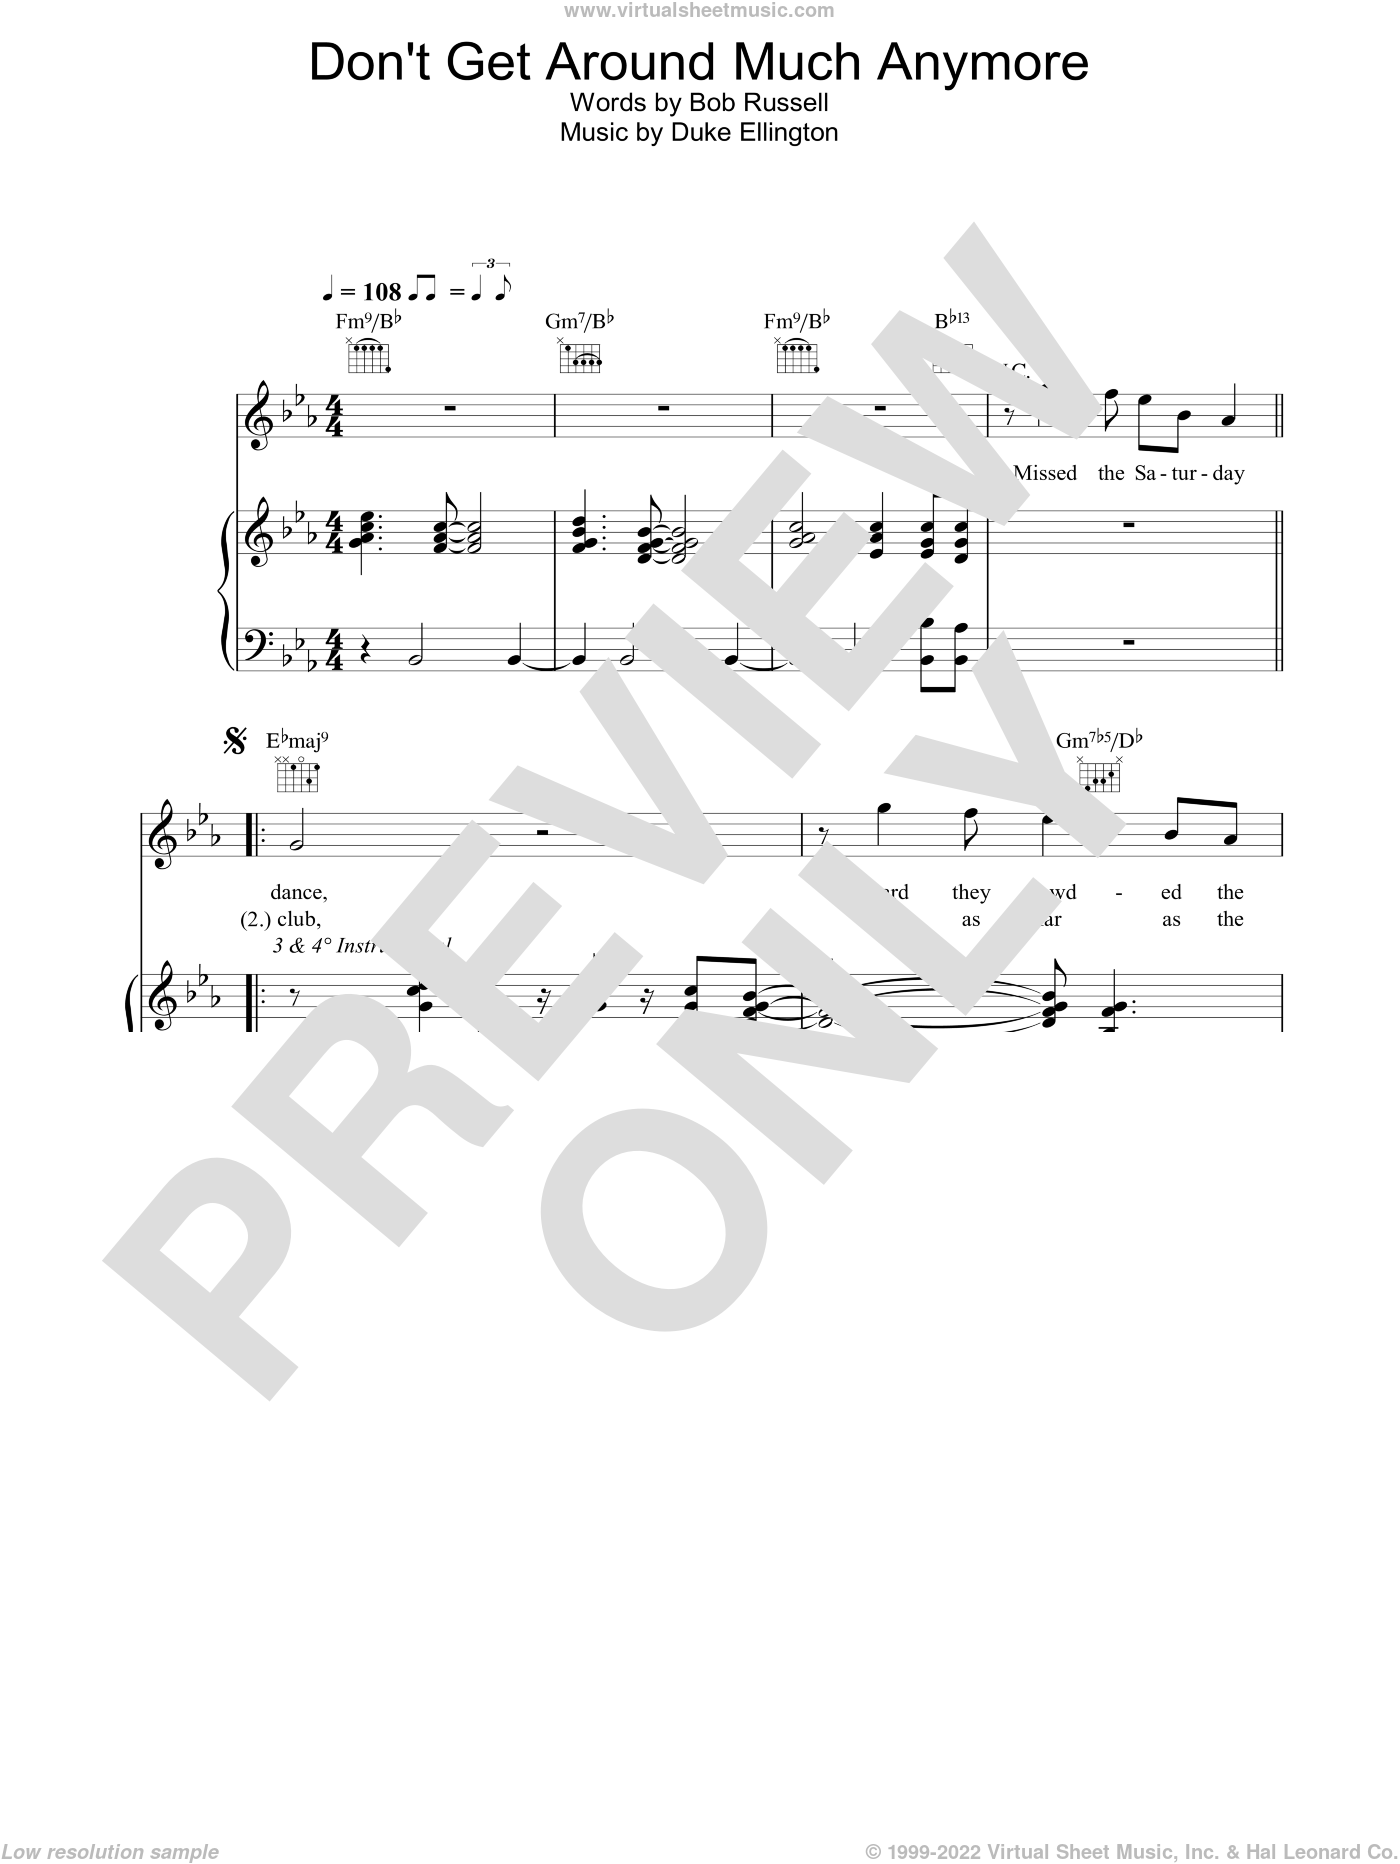 Don't Get Around Much Anymore sheet music for voice, piano or guitar by Bob Russell